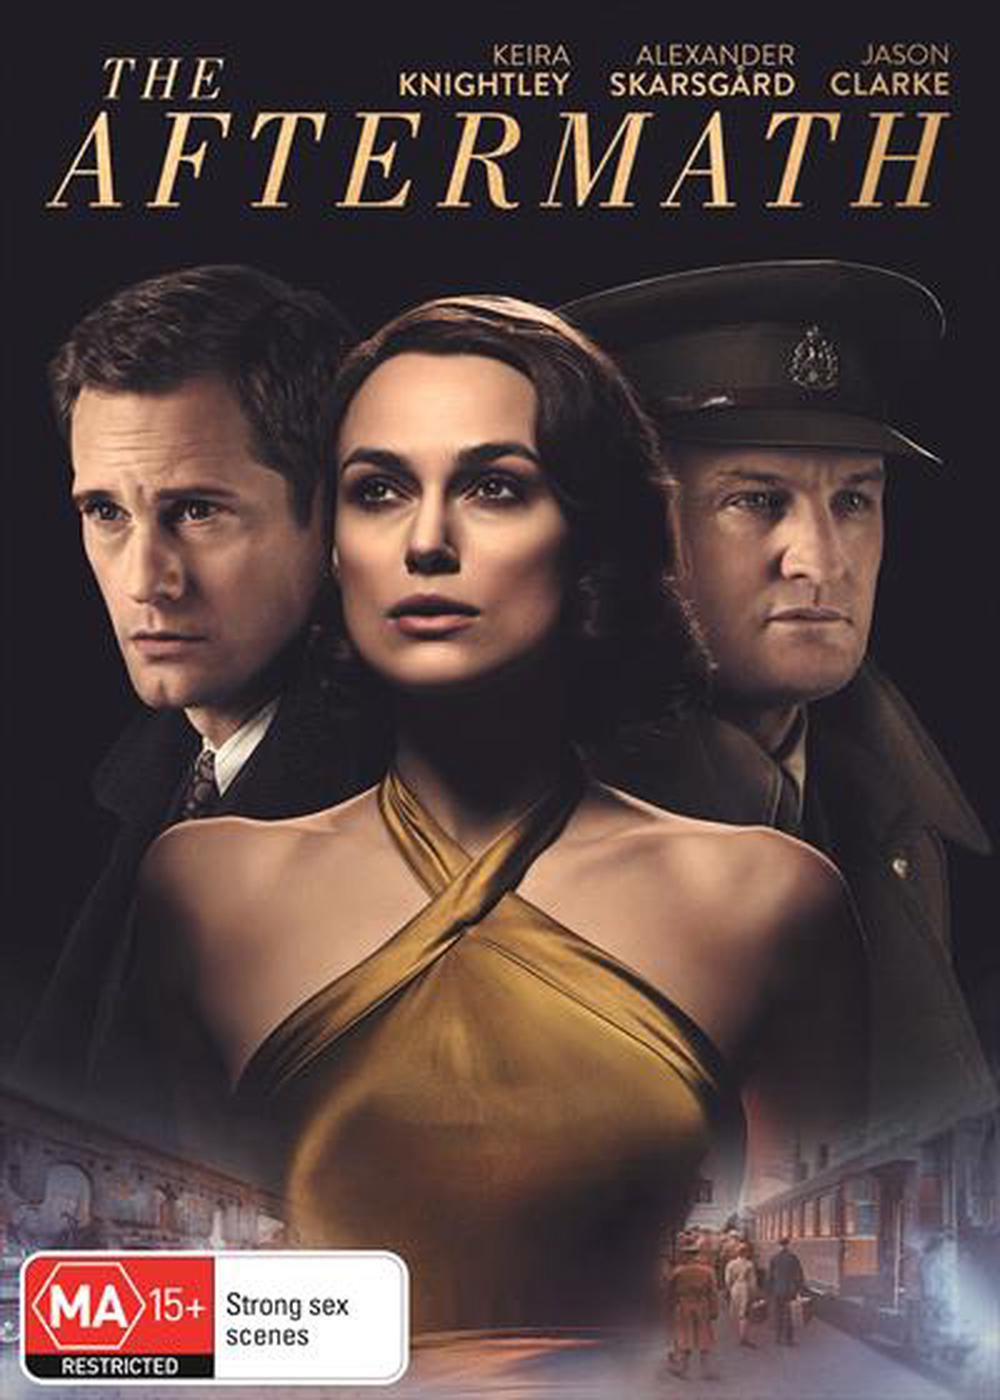 The Aftermath, DVD | Buy online at The Nile